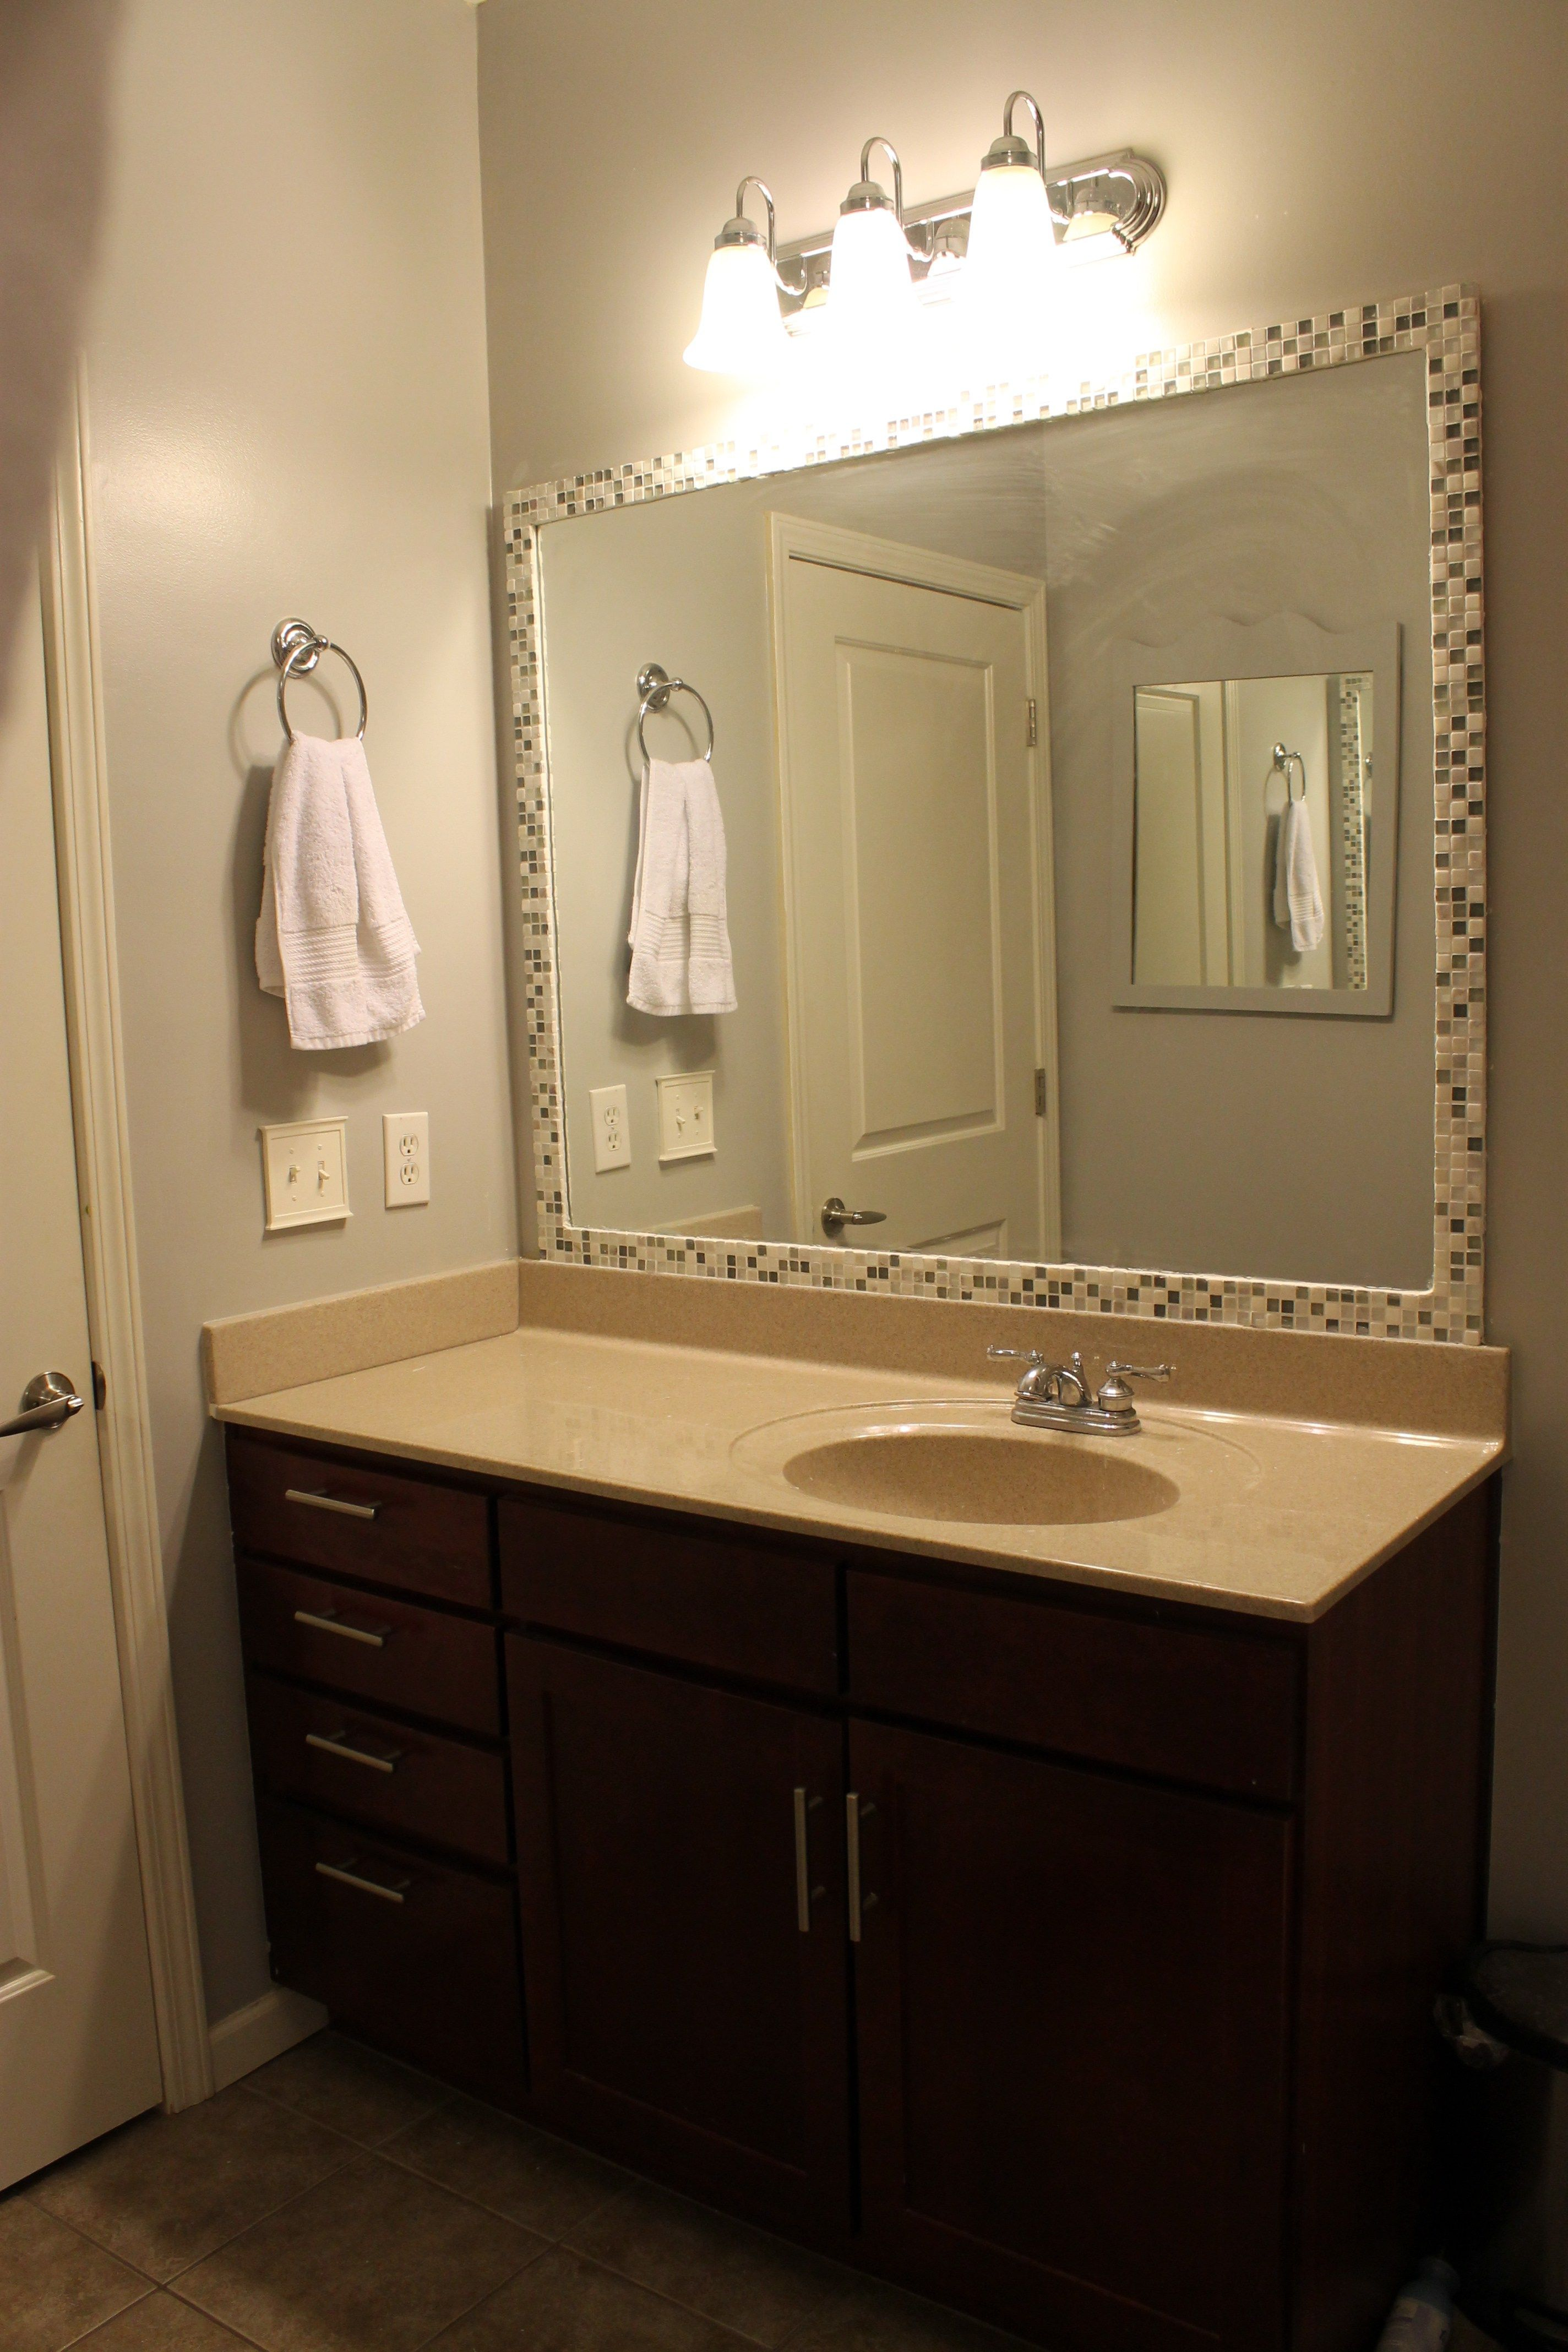 How to frame a mirror with tile  mirror  Bathroom